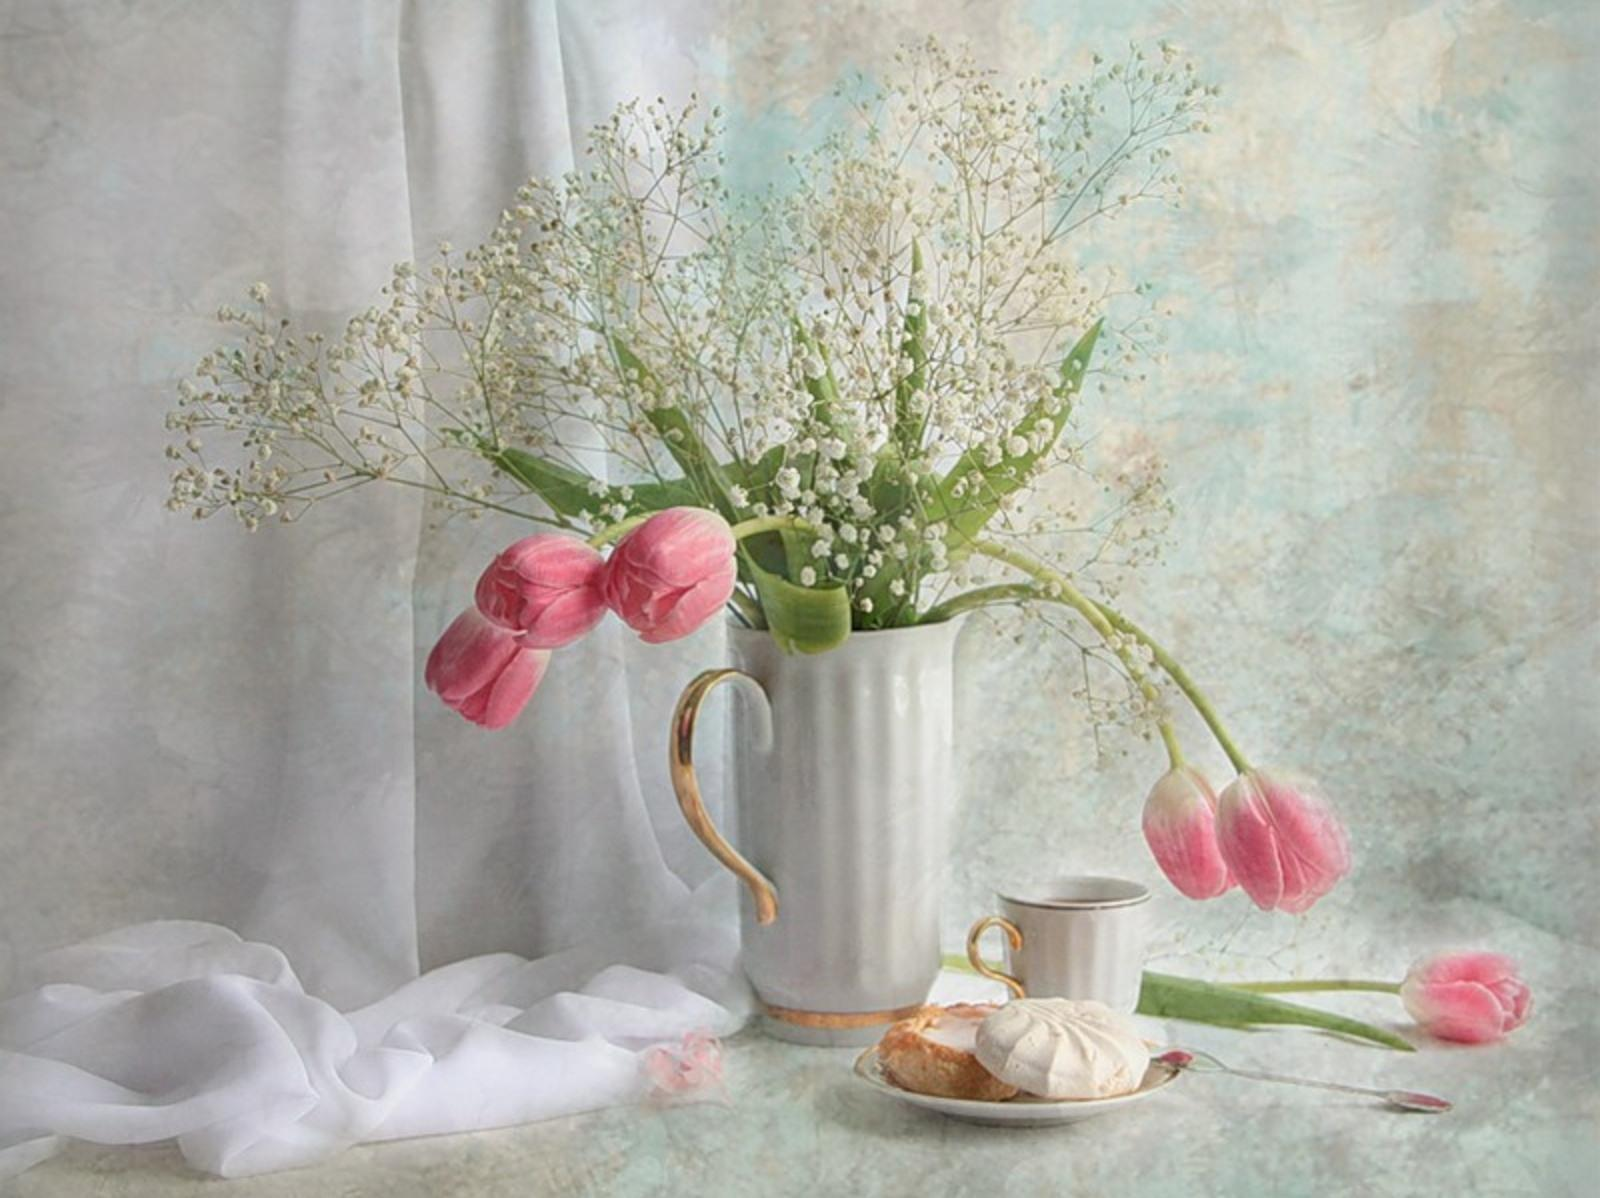 Still Life wallpapers HD quality